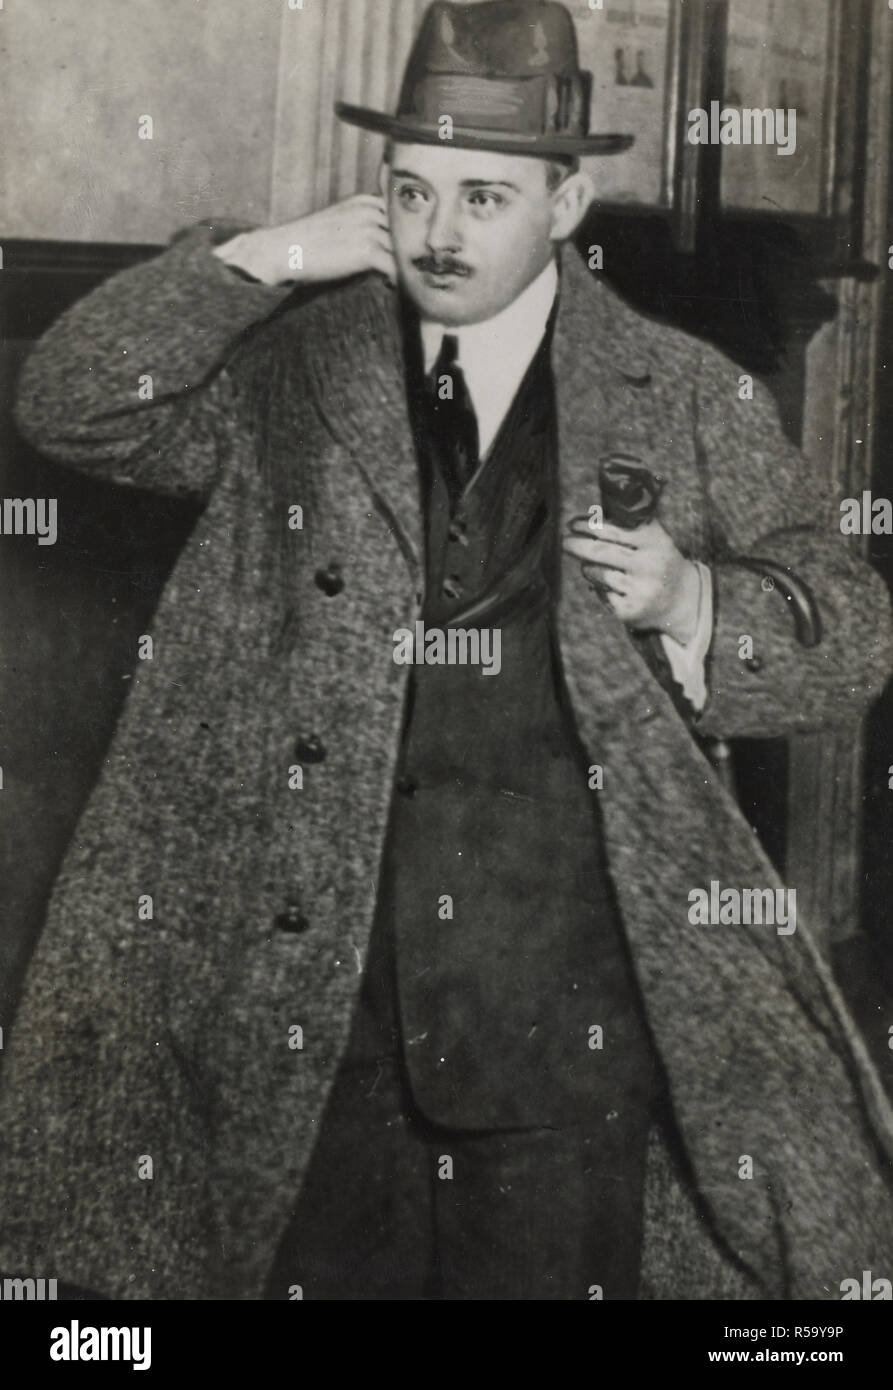 1919-   Arrest of Alien Enemies in U.S.A. - Wolf Von Igel, a paymaster for the German government in connection with enemy activities in war country. Von Igel was convicted at San Francisco in March 1919 for feloniously conspiring to set on foot a military enterprise within the territory of the United States against India - Stock Image